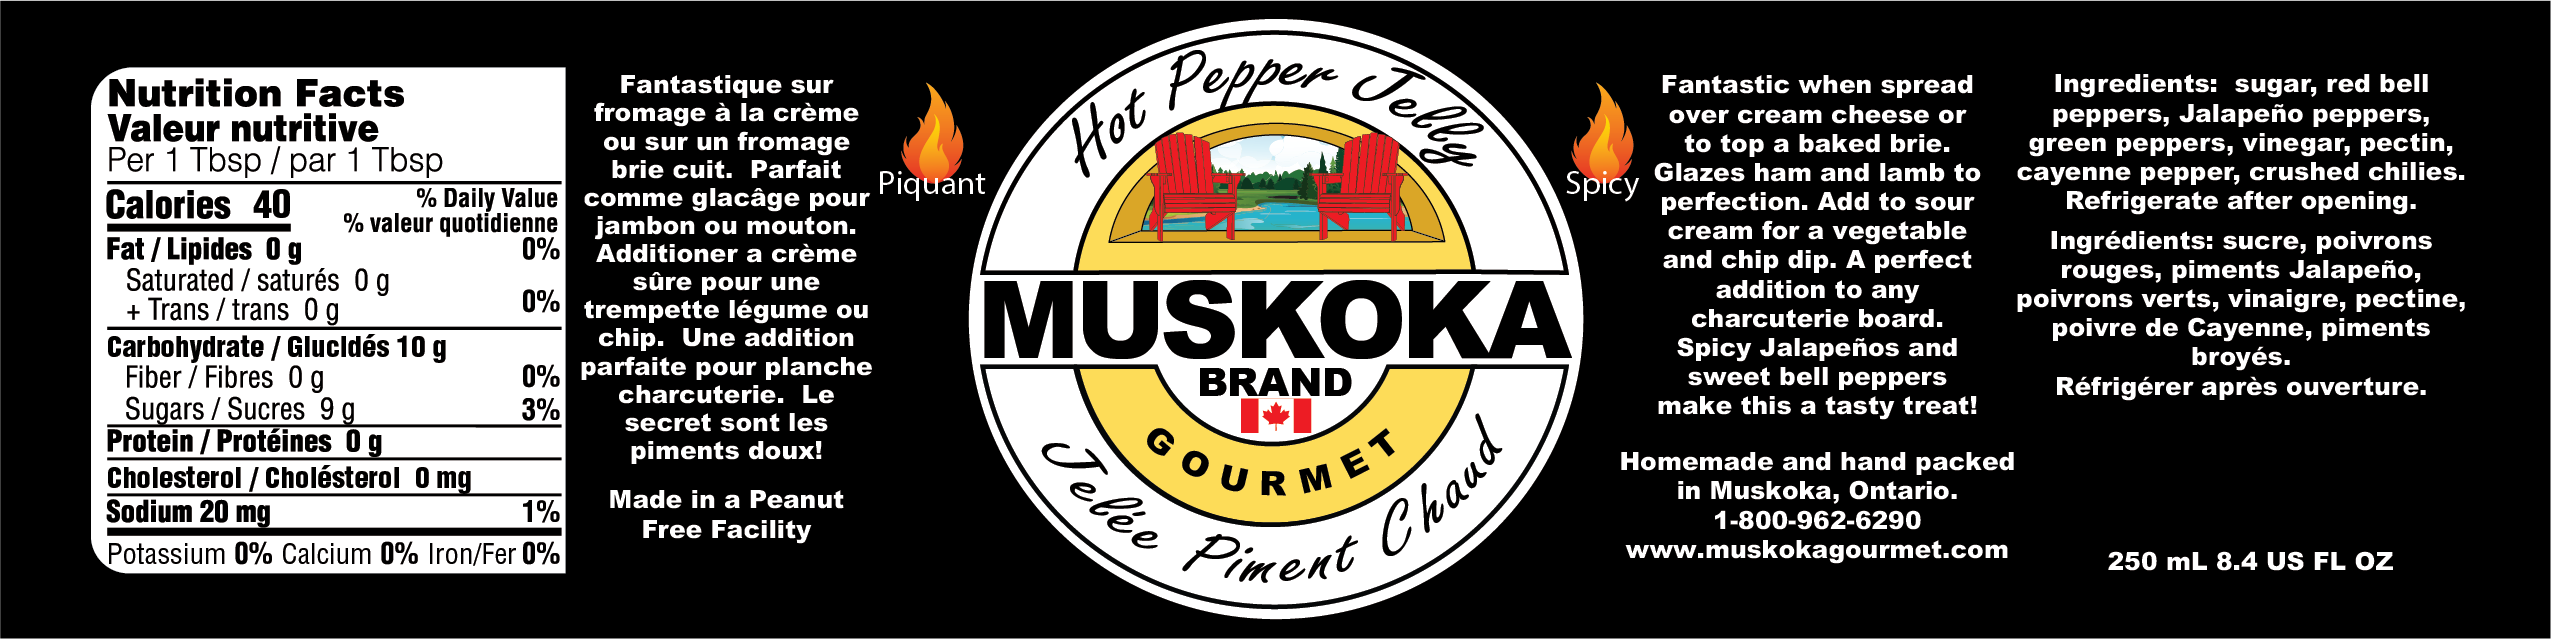 Muskoka Hot pepper jelly nutritional and information.